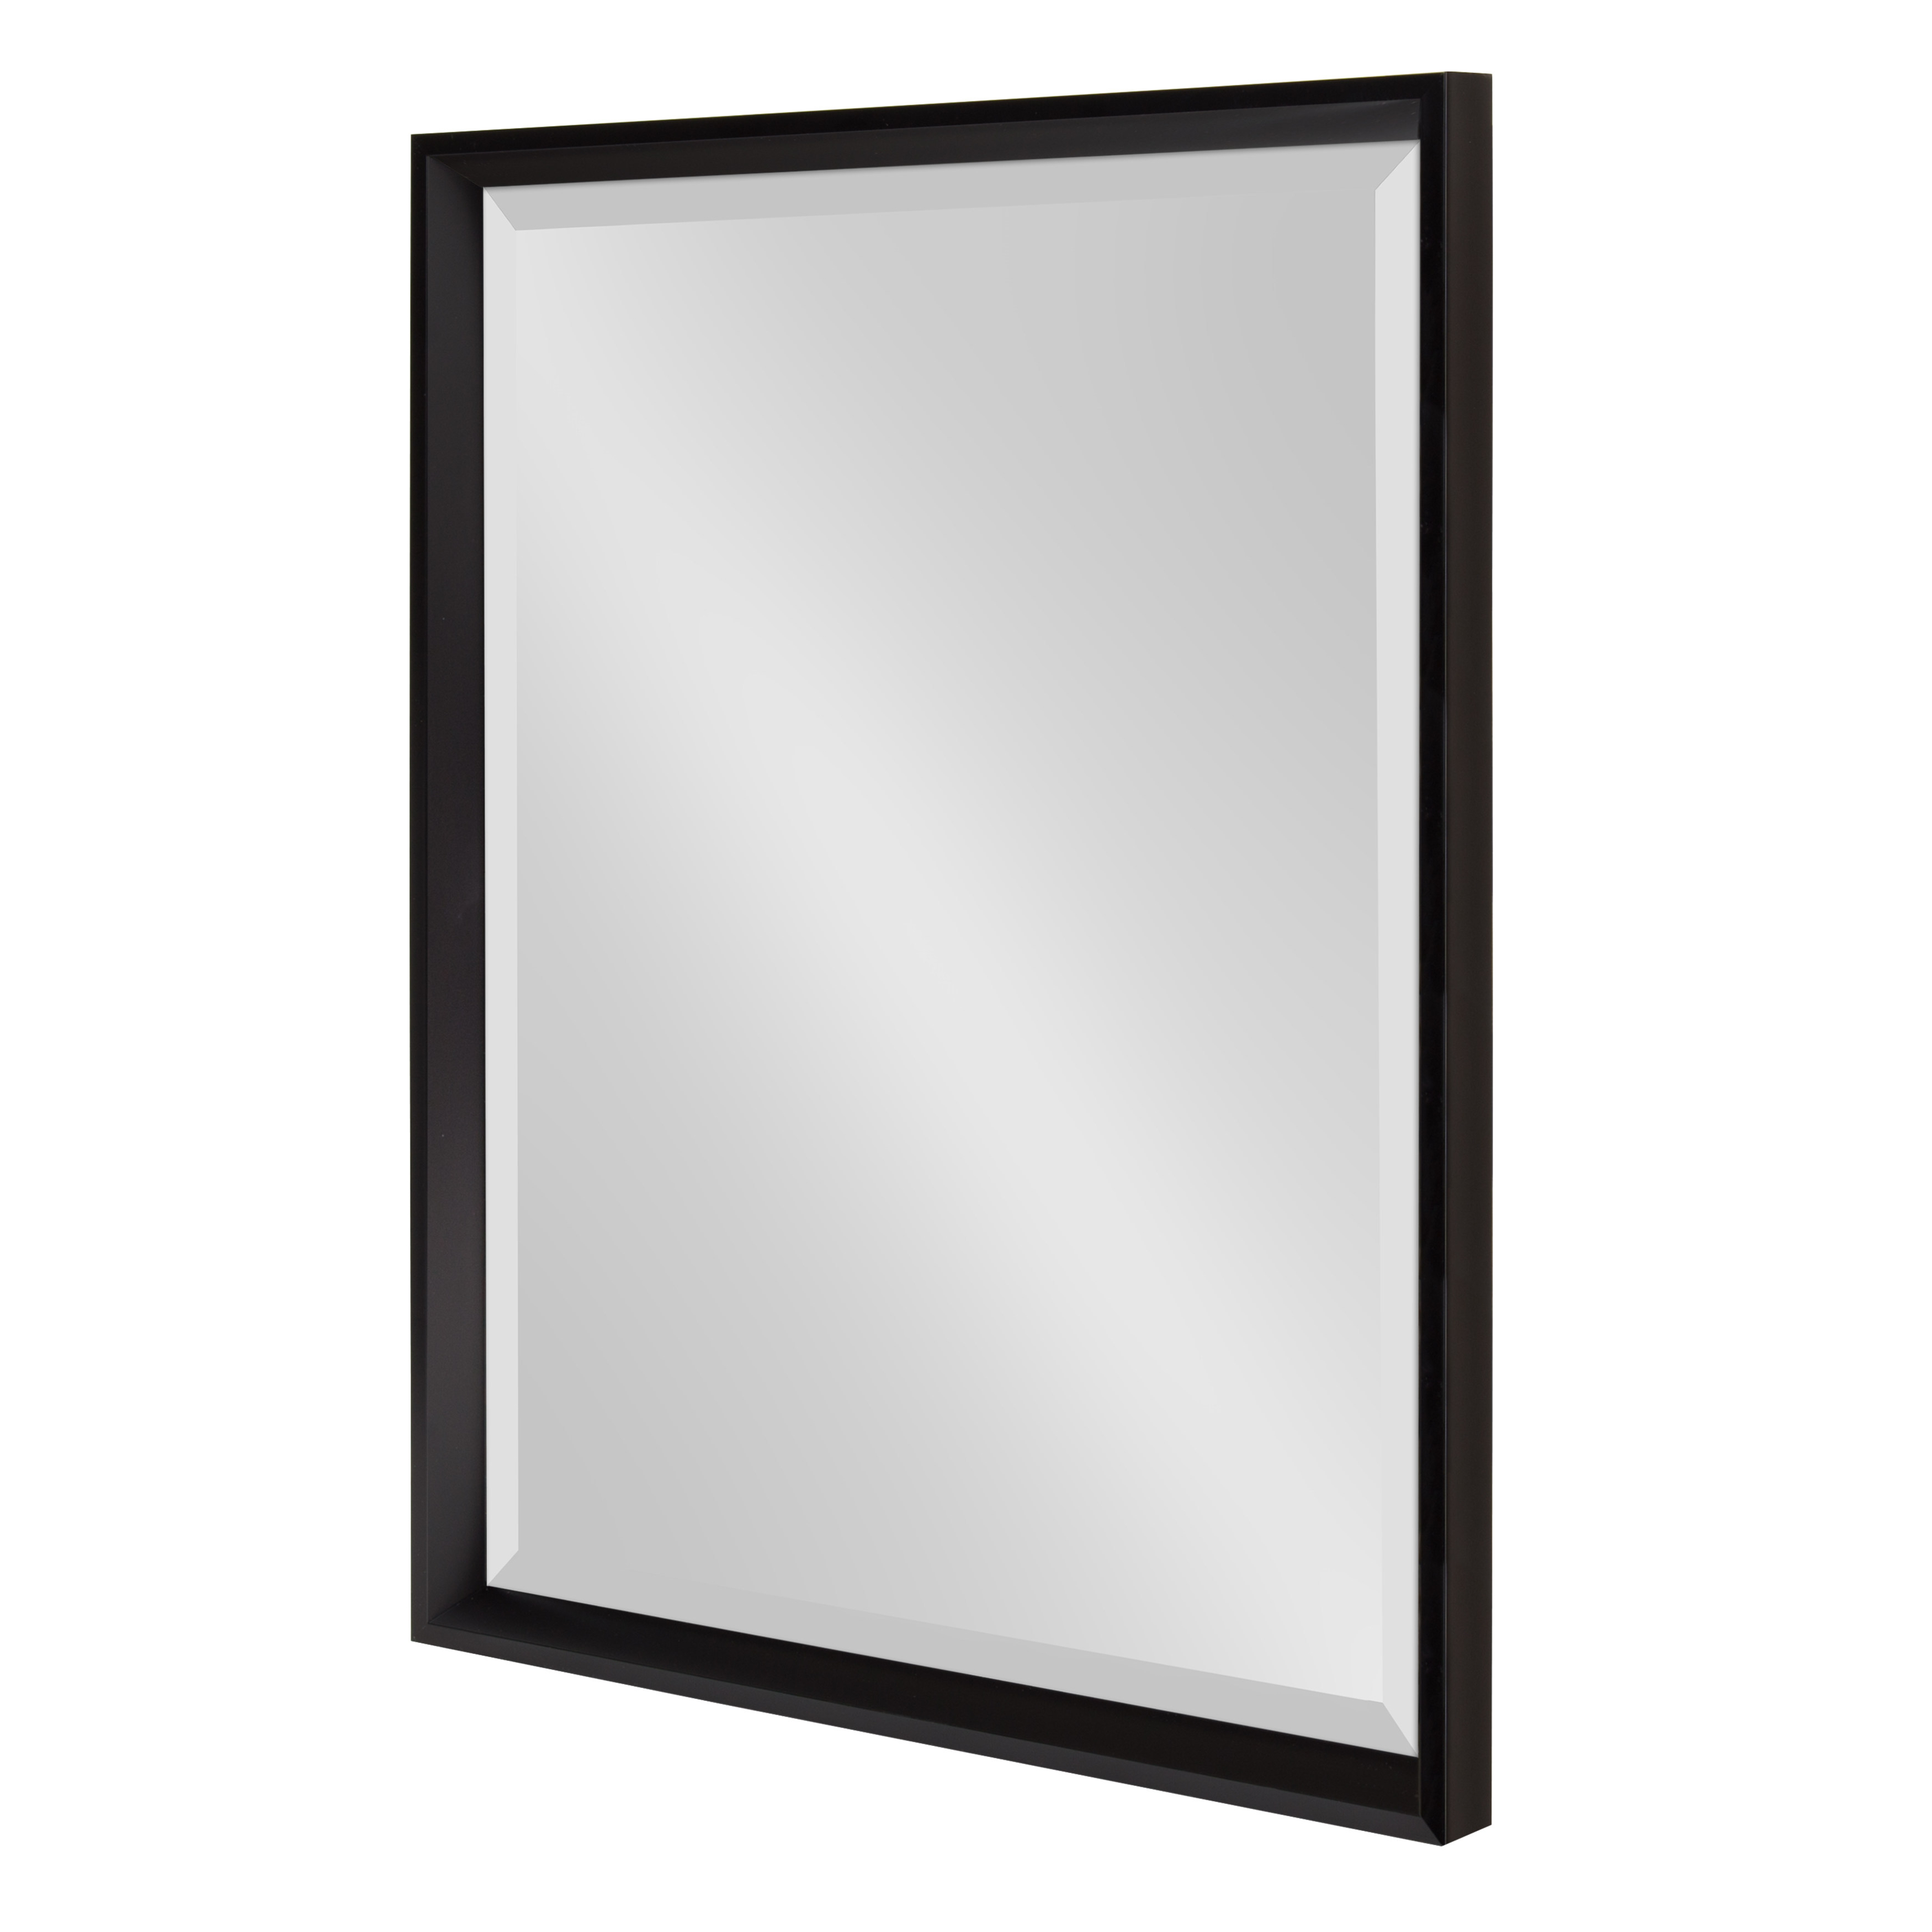 Favorite Kate And Laurel Calter Framed Decorative Rectangle Wall Mirror, 19.5x (View 16 of 20)